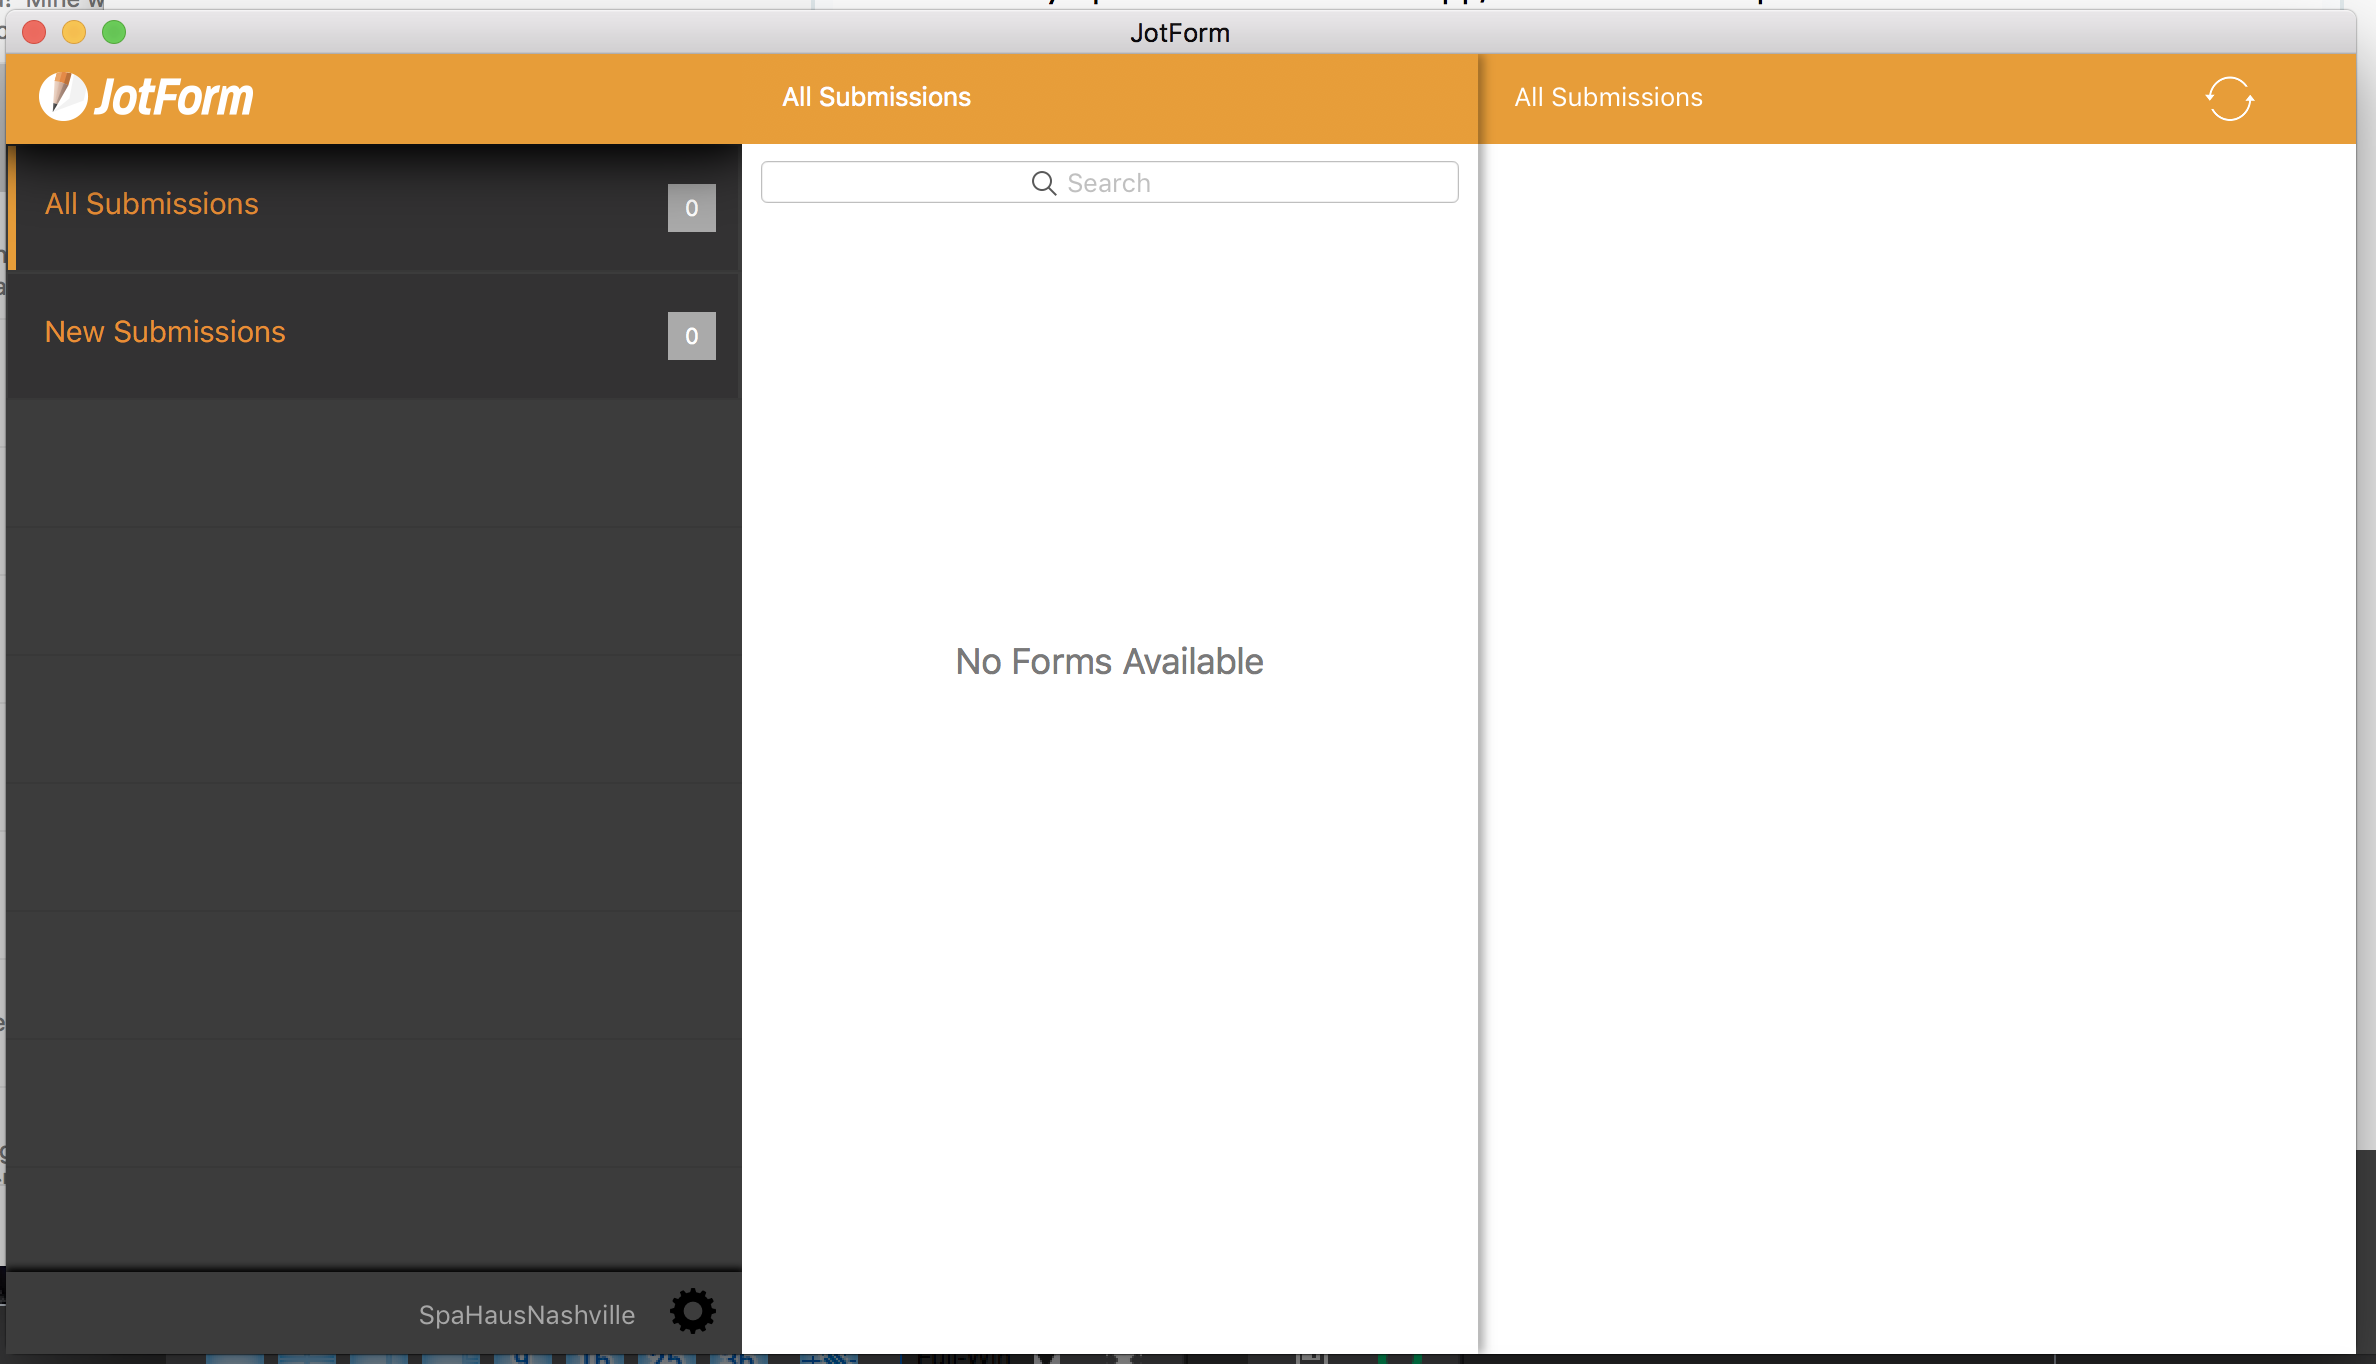 JotForm application at Mac App Store is not showing shared forms to